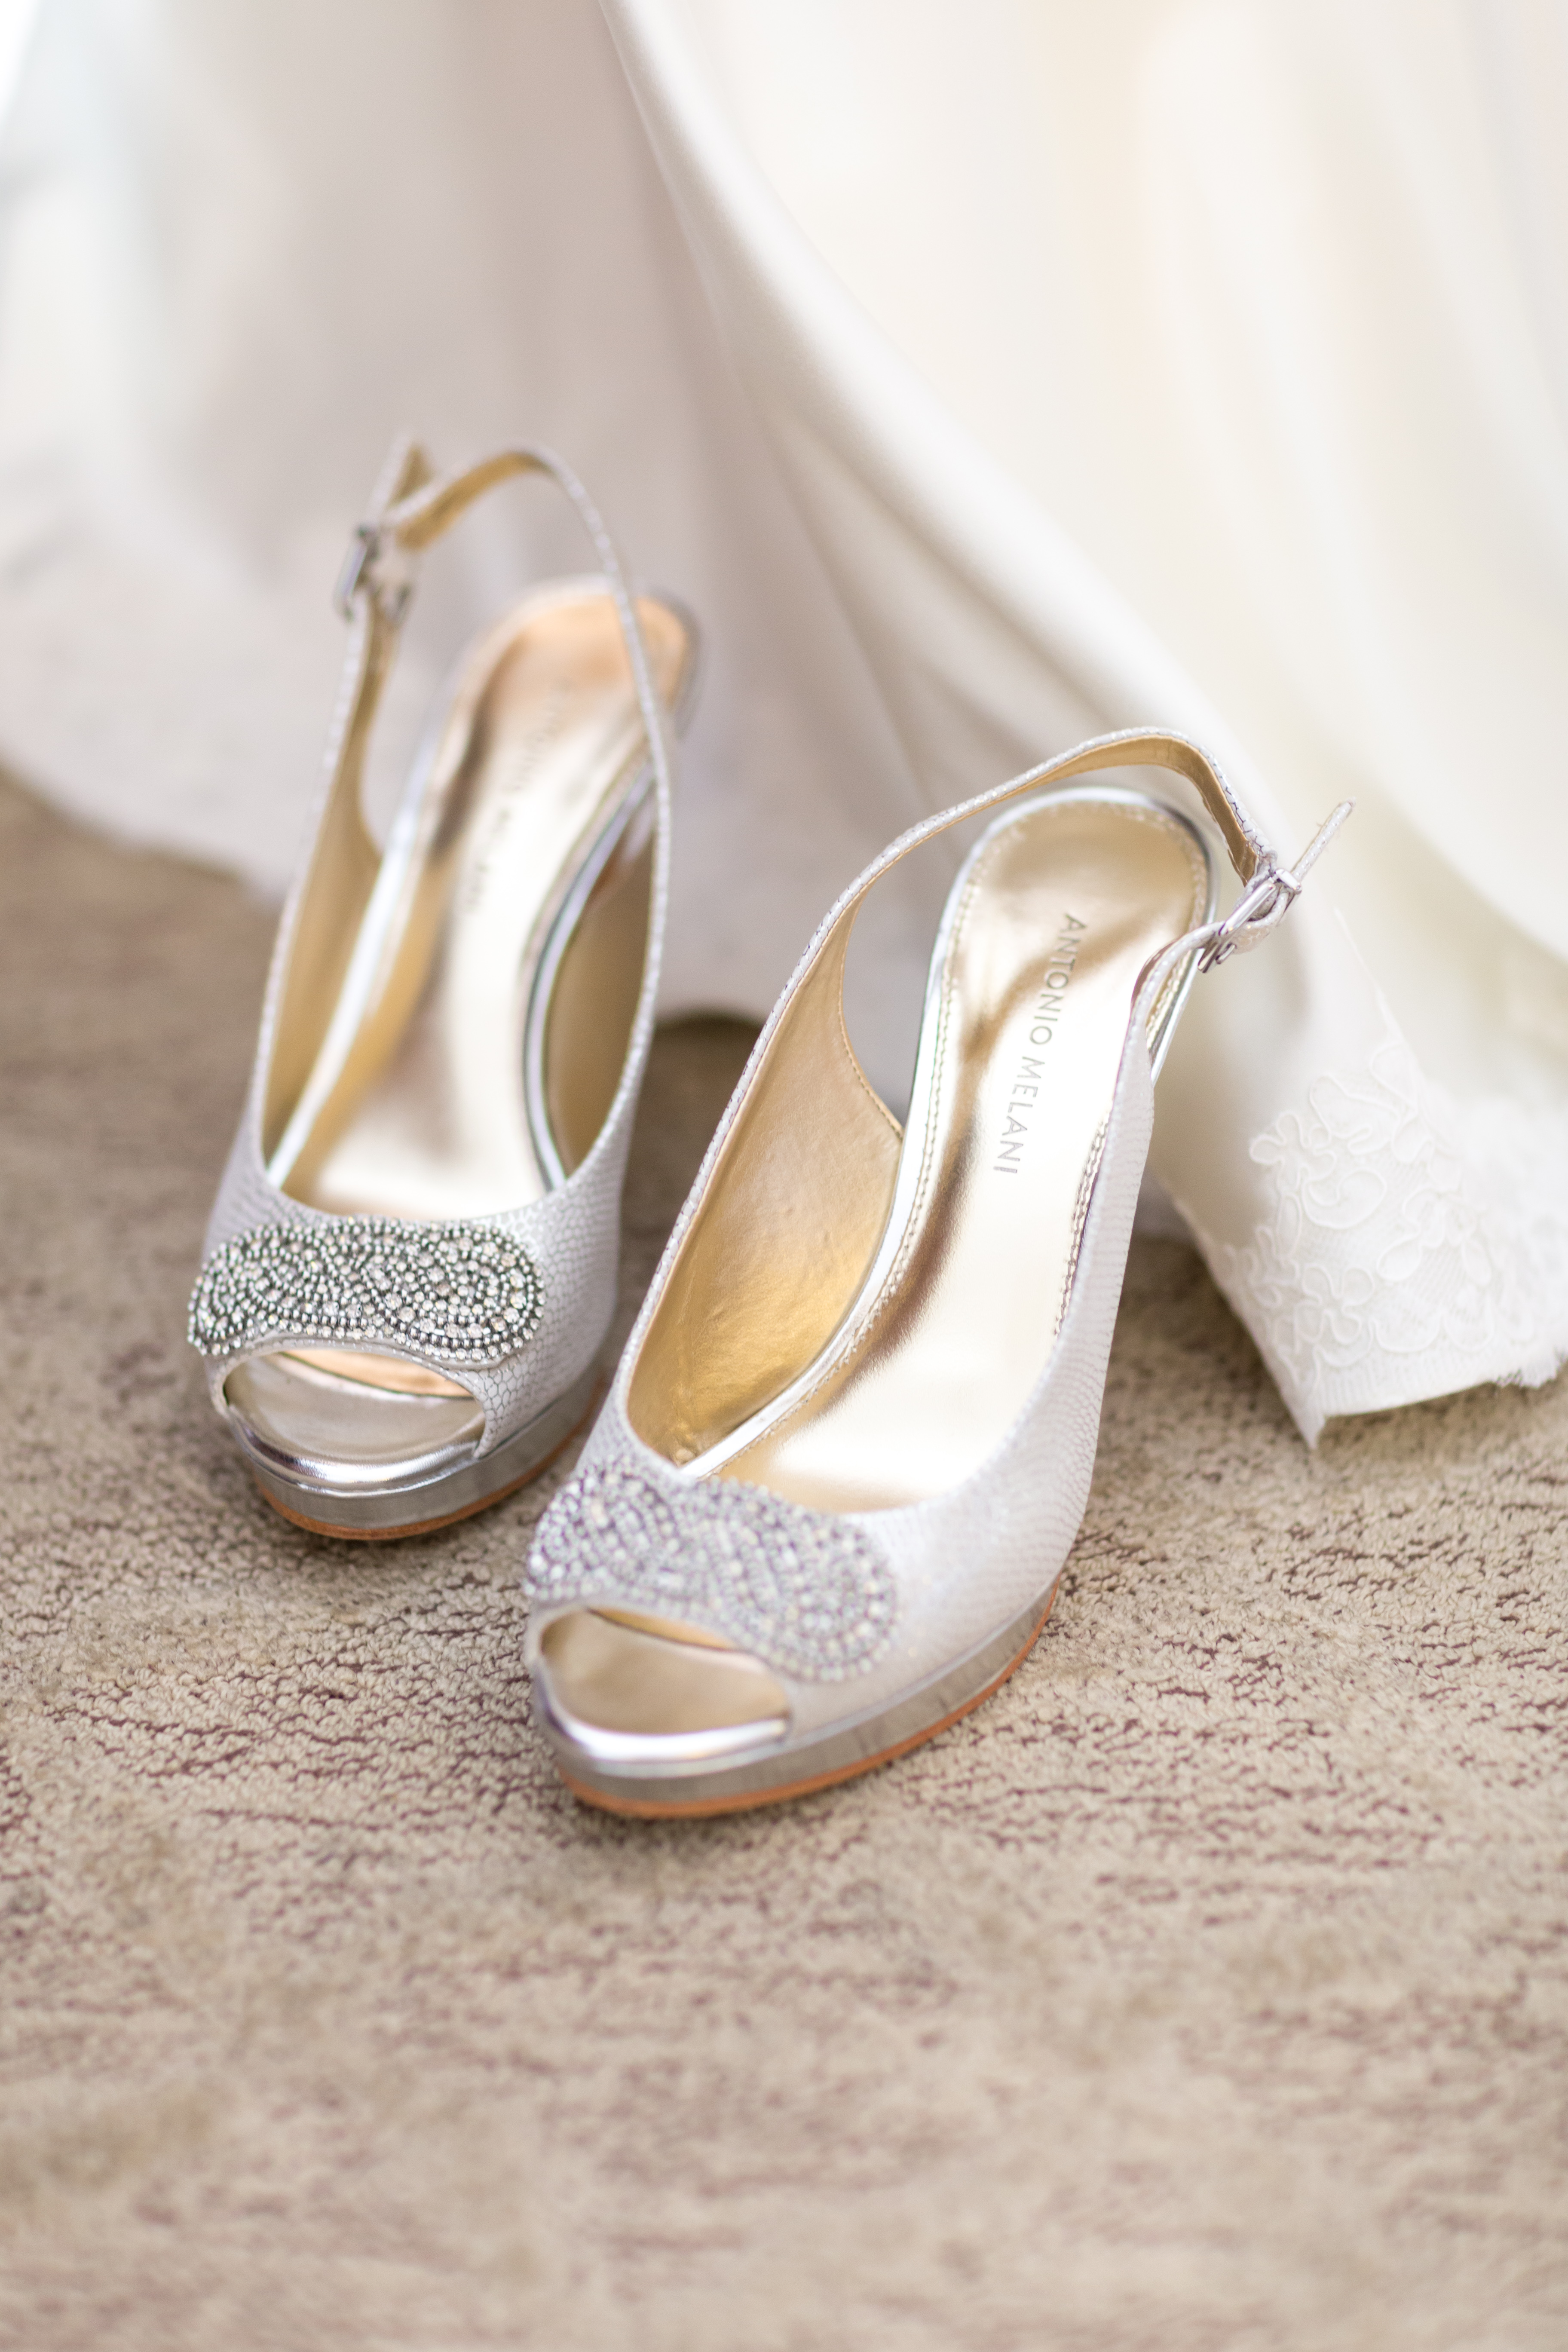 bridal shoes in the suite that the Hilton Center City in Charlotte North Carolina